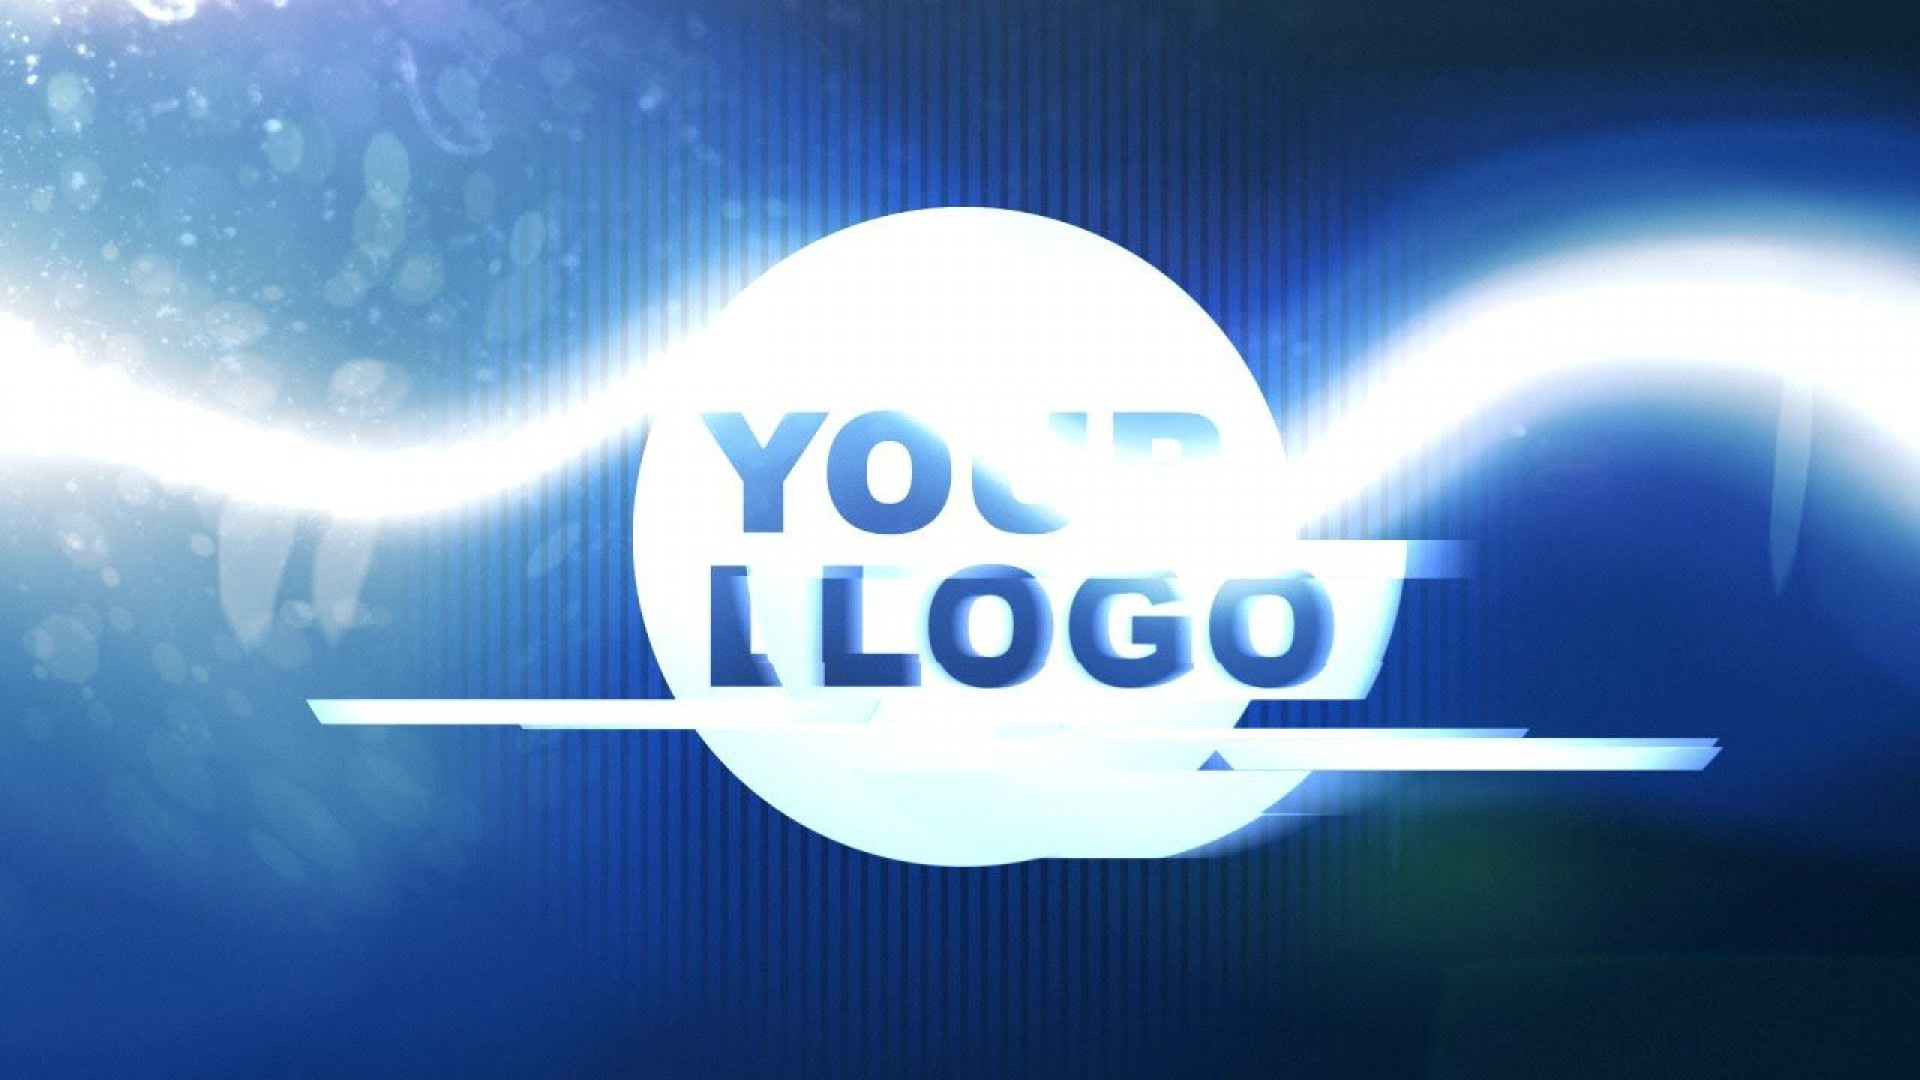 001 Awful Adobe After Effect Logo Template Free Download High Resolution  Cs6 Title Animation1920